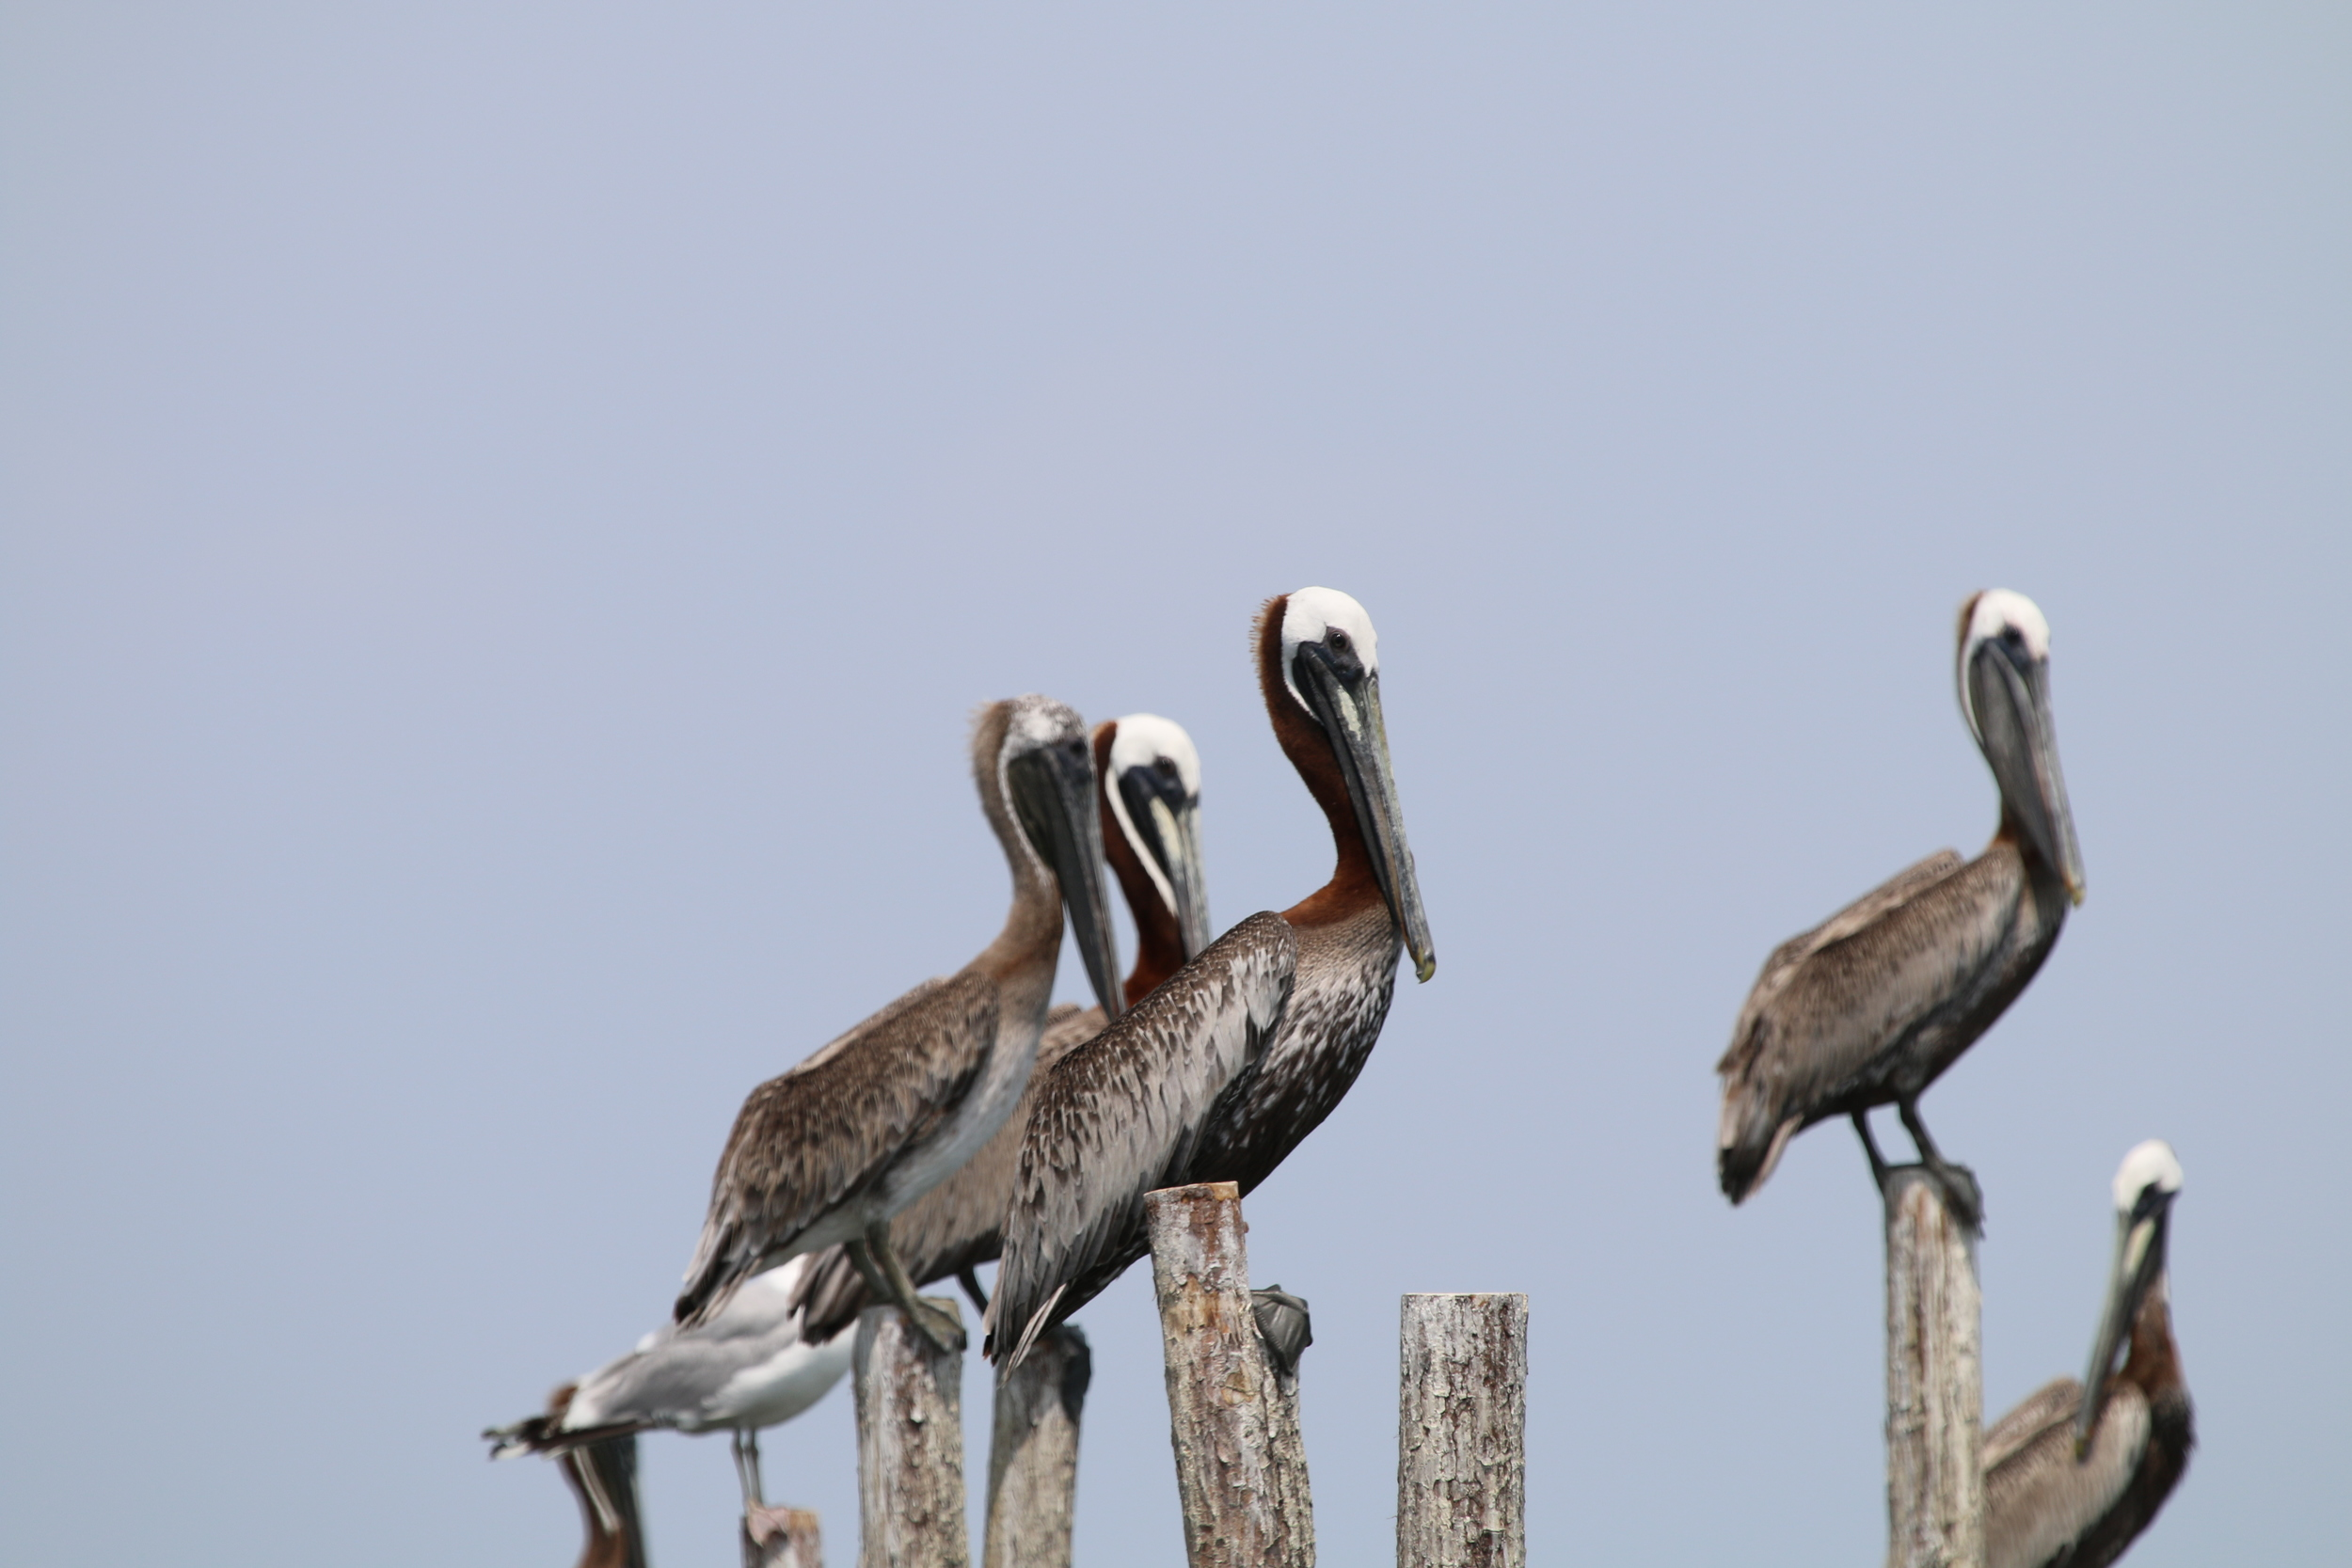 Brown pelicans ( Pelecanus occidentalis ) sitting on the posts of pound net. These tricky birds sometimes look like dolphins diving, even to the trained eye! Photo by Eric M. Patterson